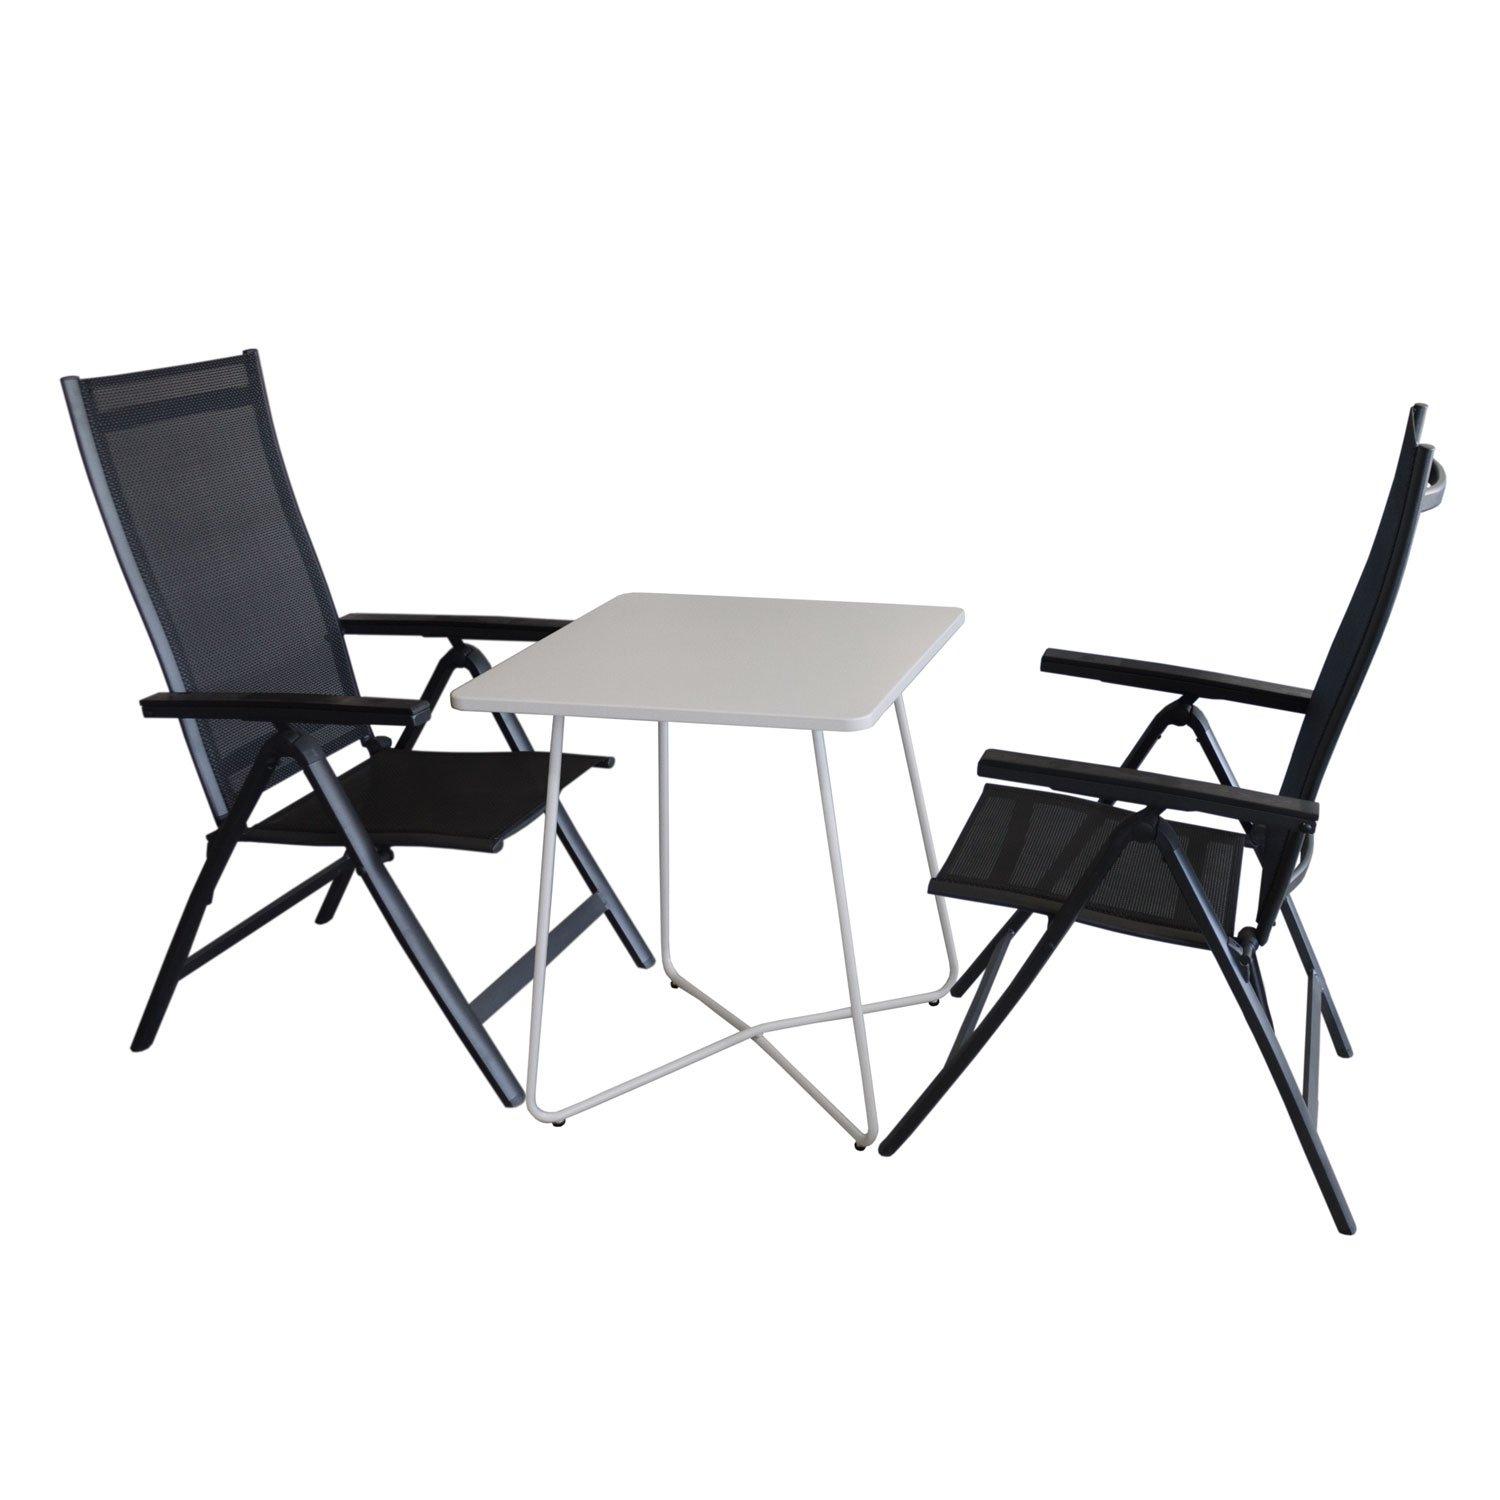 3tlg balkonm bel set bistrotisch metall 60x60cm wei 2x hochlehner aluminium. Black Bedroom Furniture Sets. Home Design Ideas